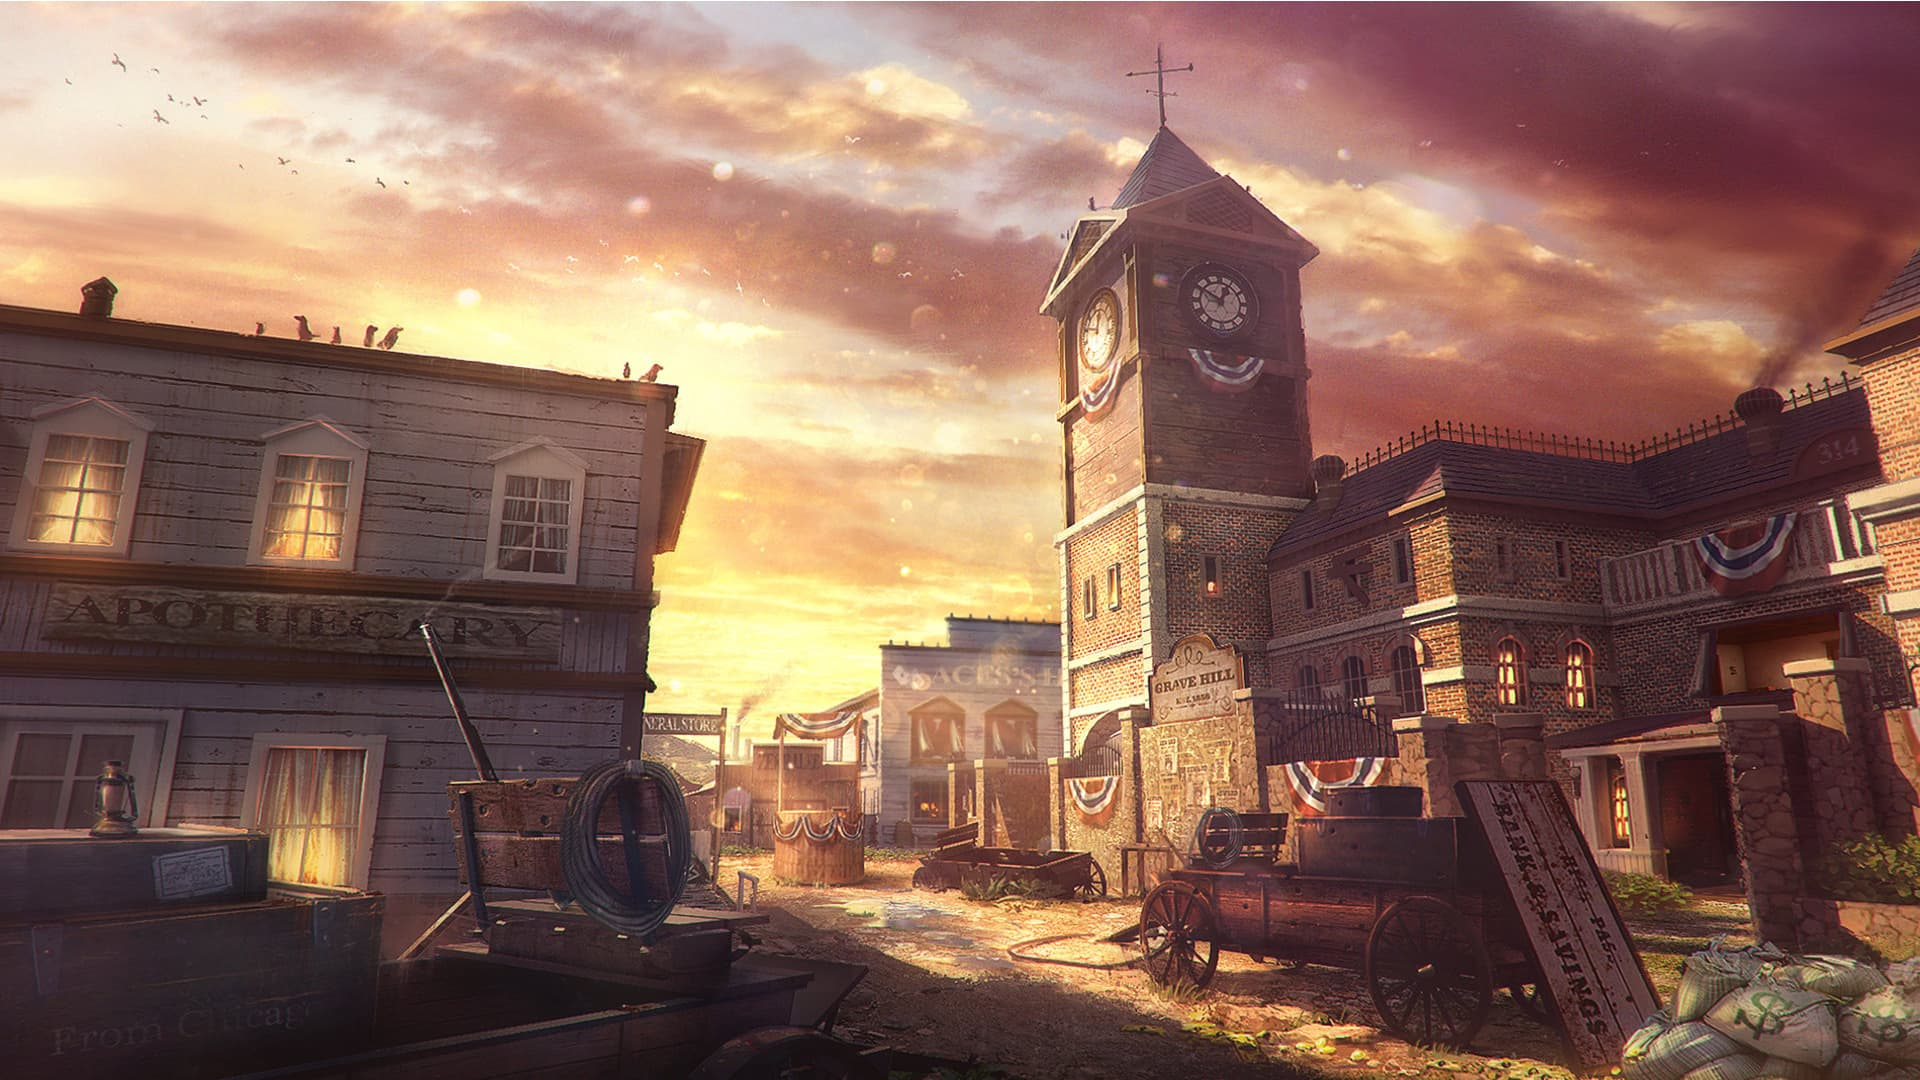 Xbox One Call of Duty: Black Ops III - Salvation